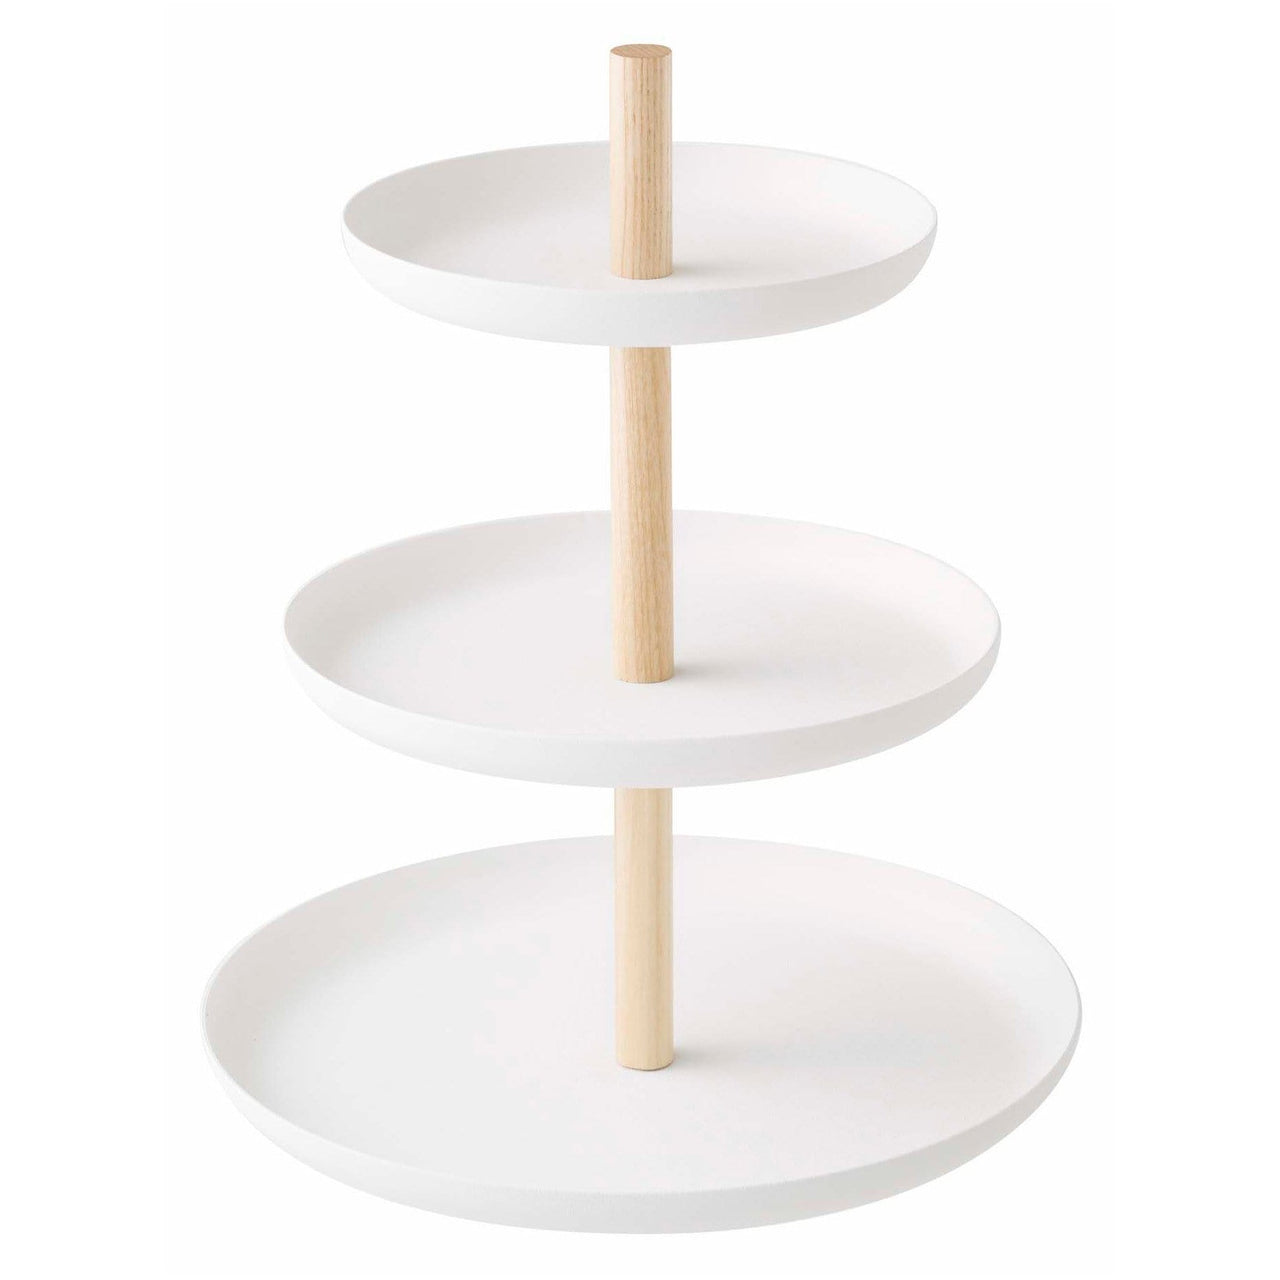 Yamazaki Home Serveware Tosca Three-Tier Server